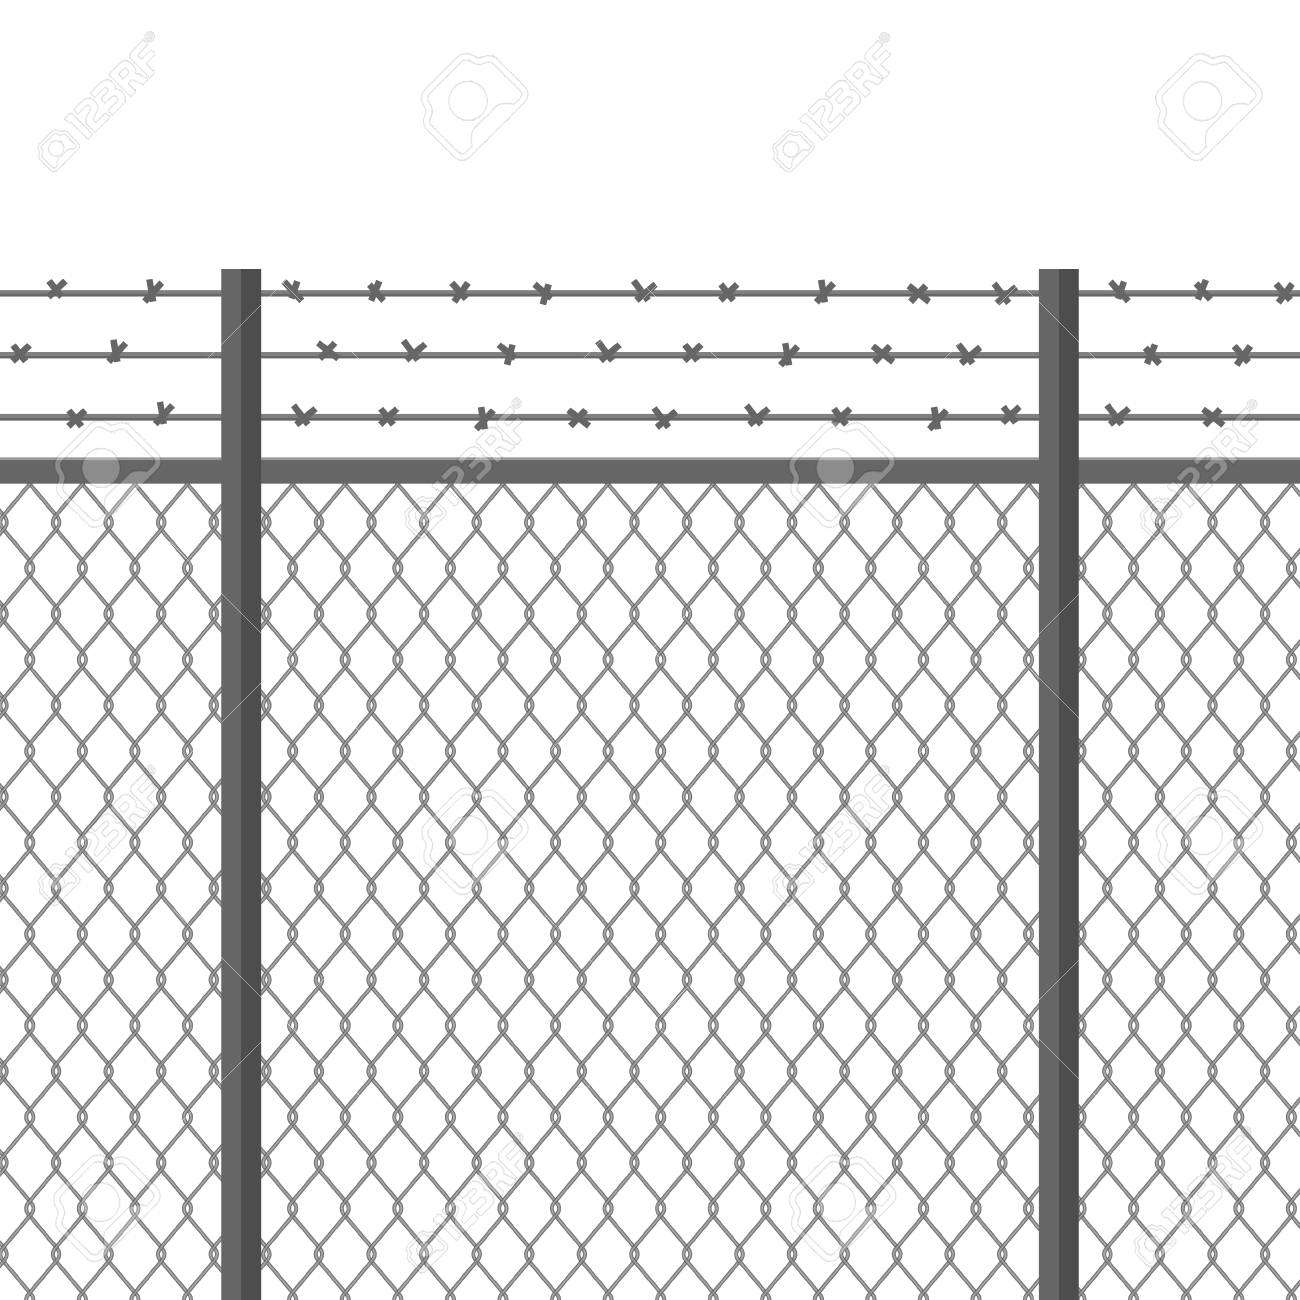 Metal Fence With Barbed Wire. Fortification, Secured Property ...